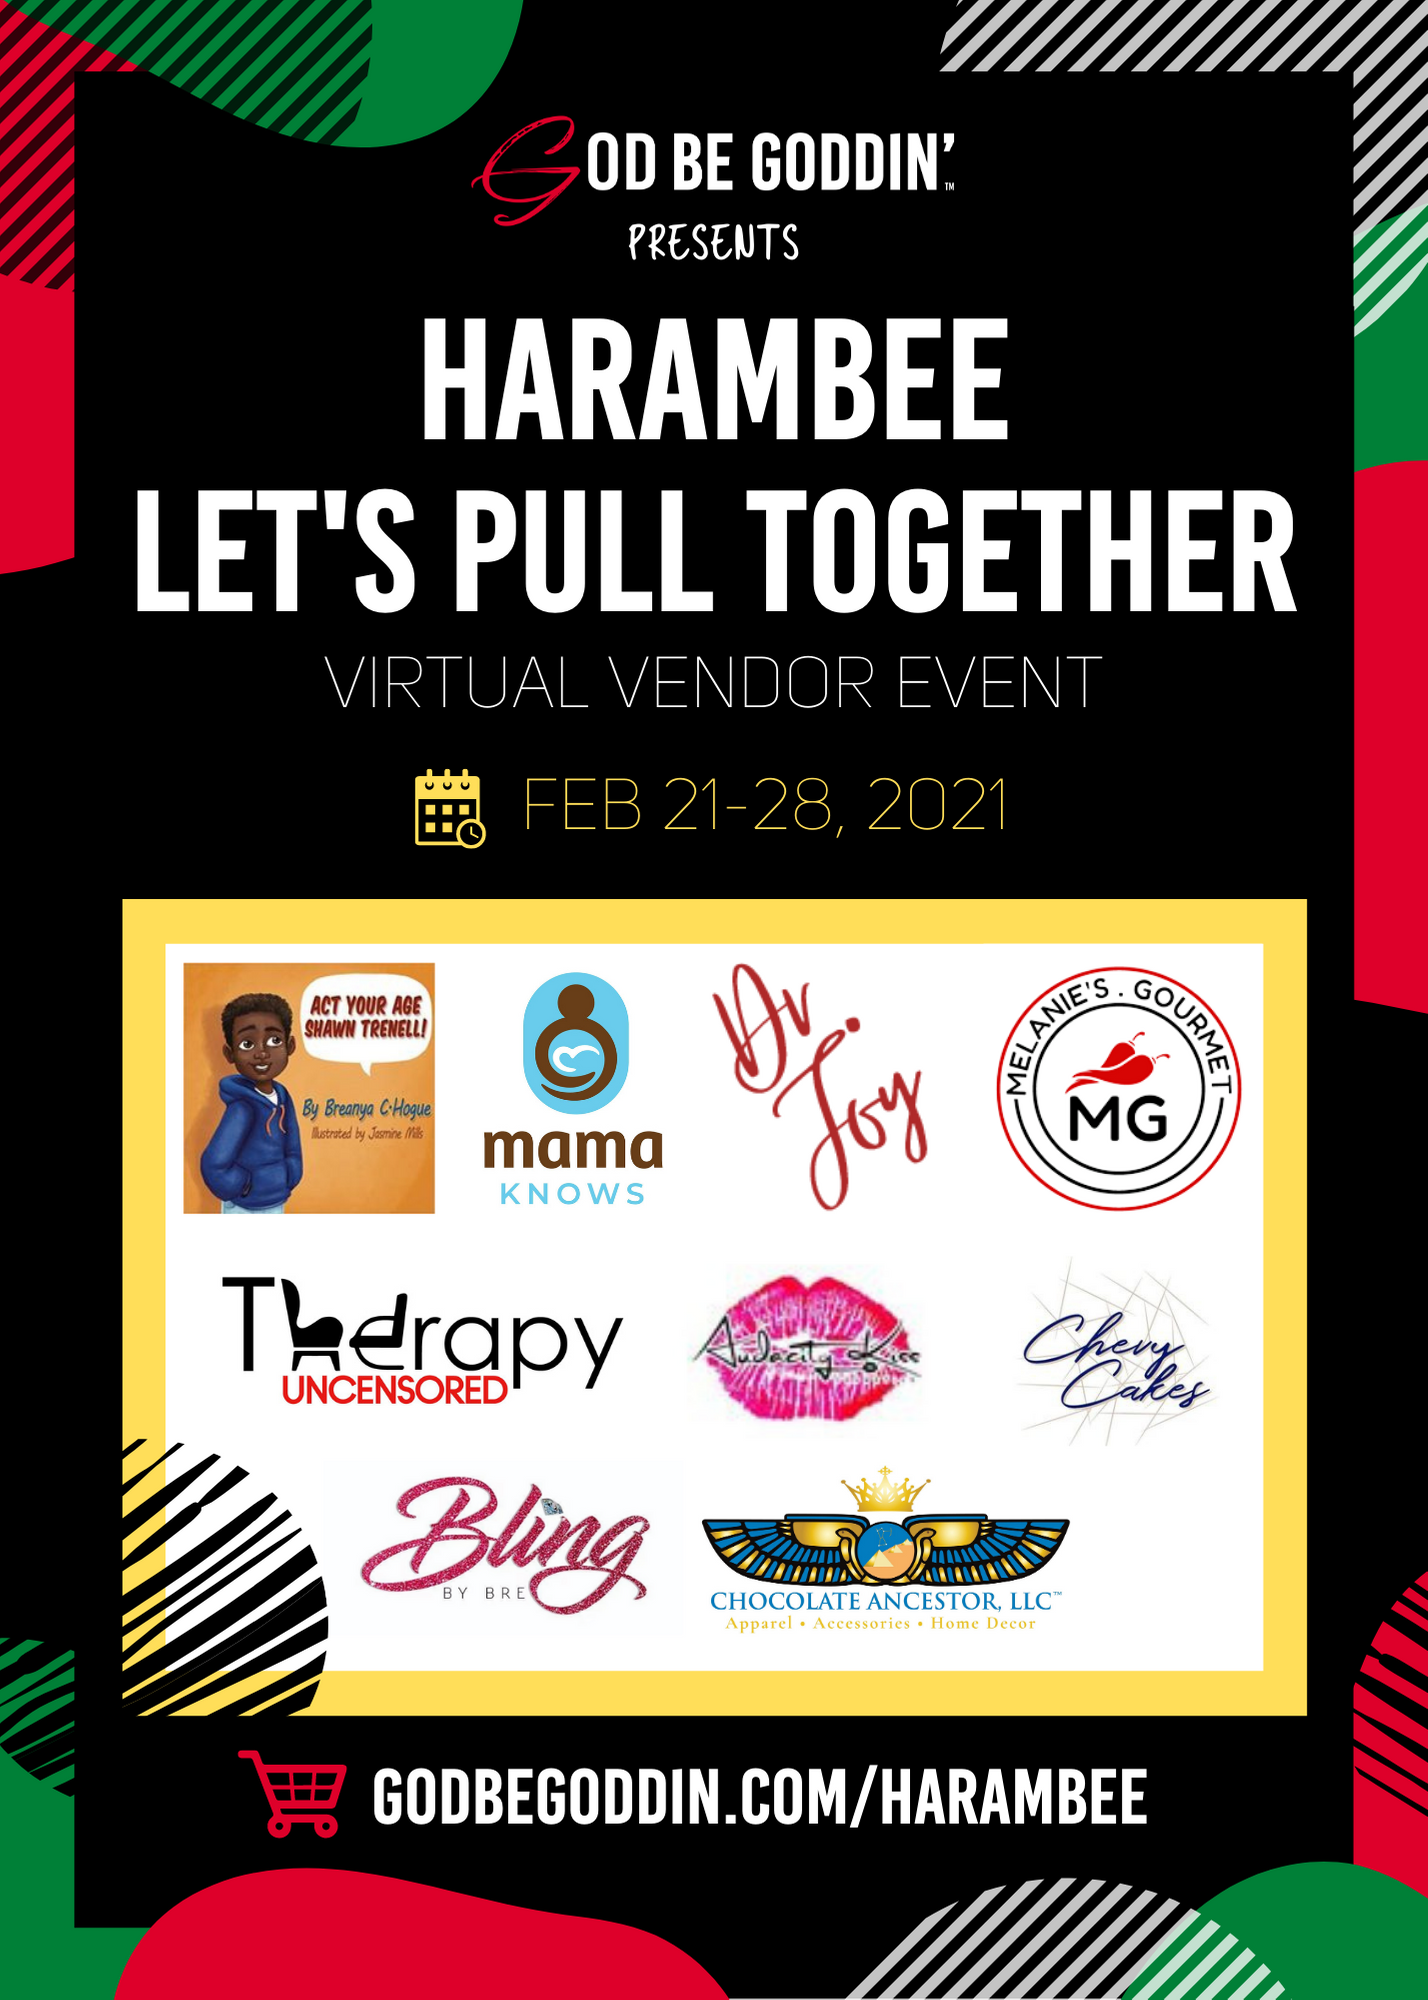 Harambee Let's Pull Together Virtual Vendor Event, February 21 through the 28th, 2021.